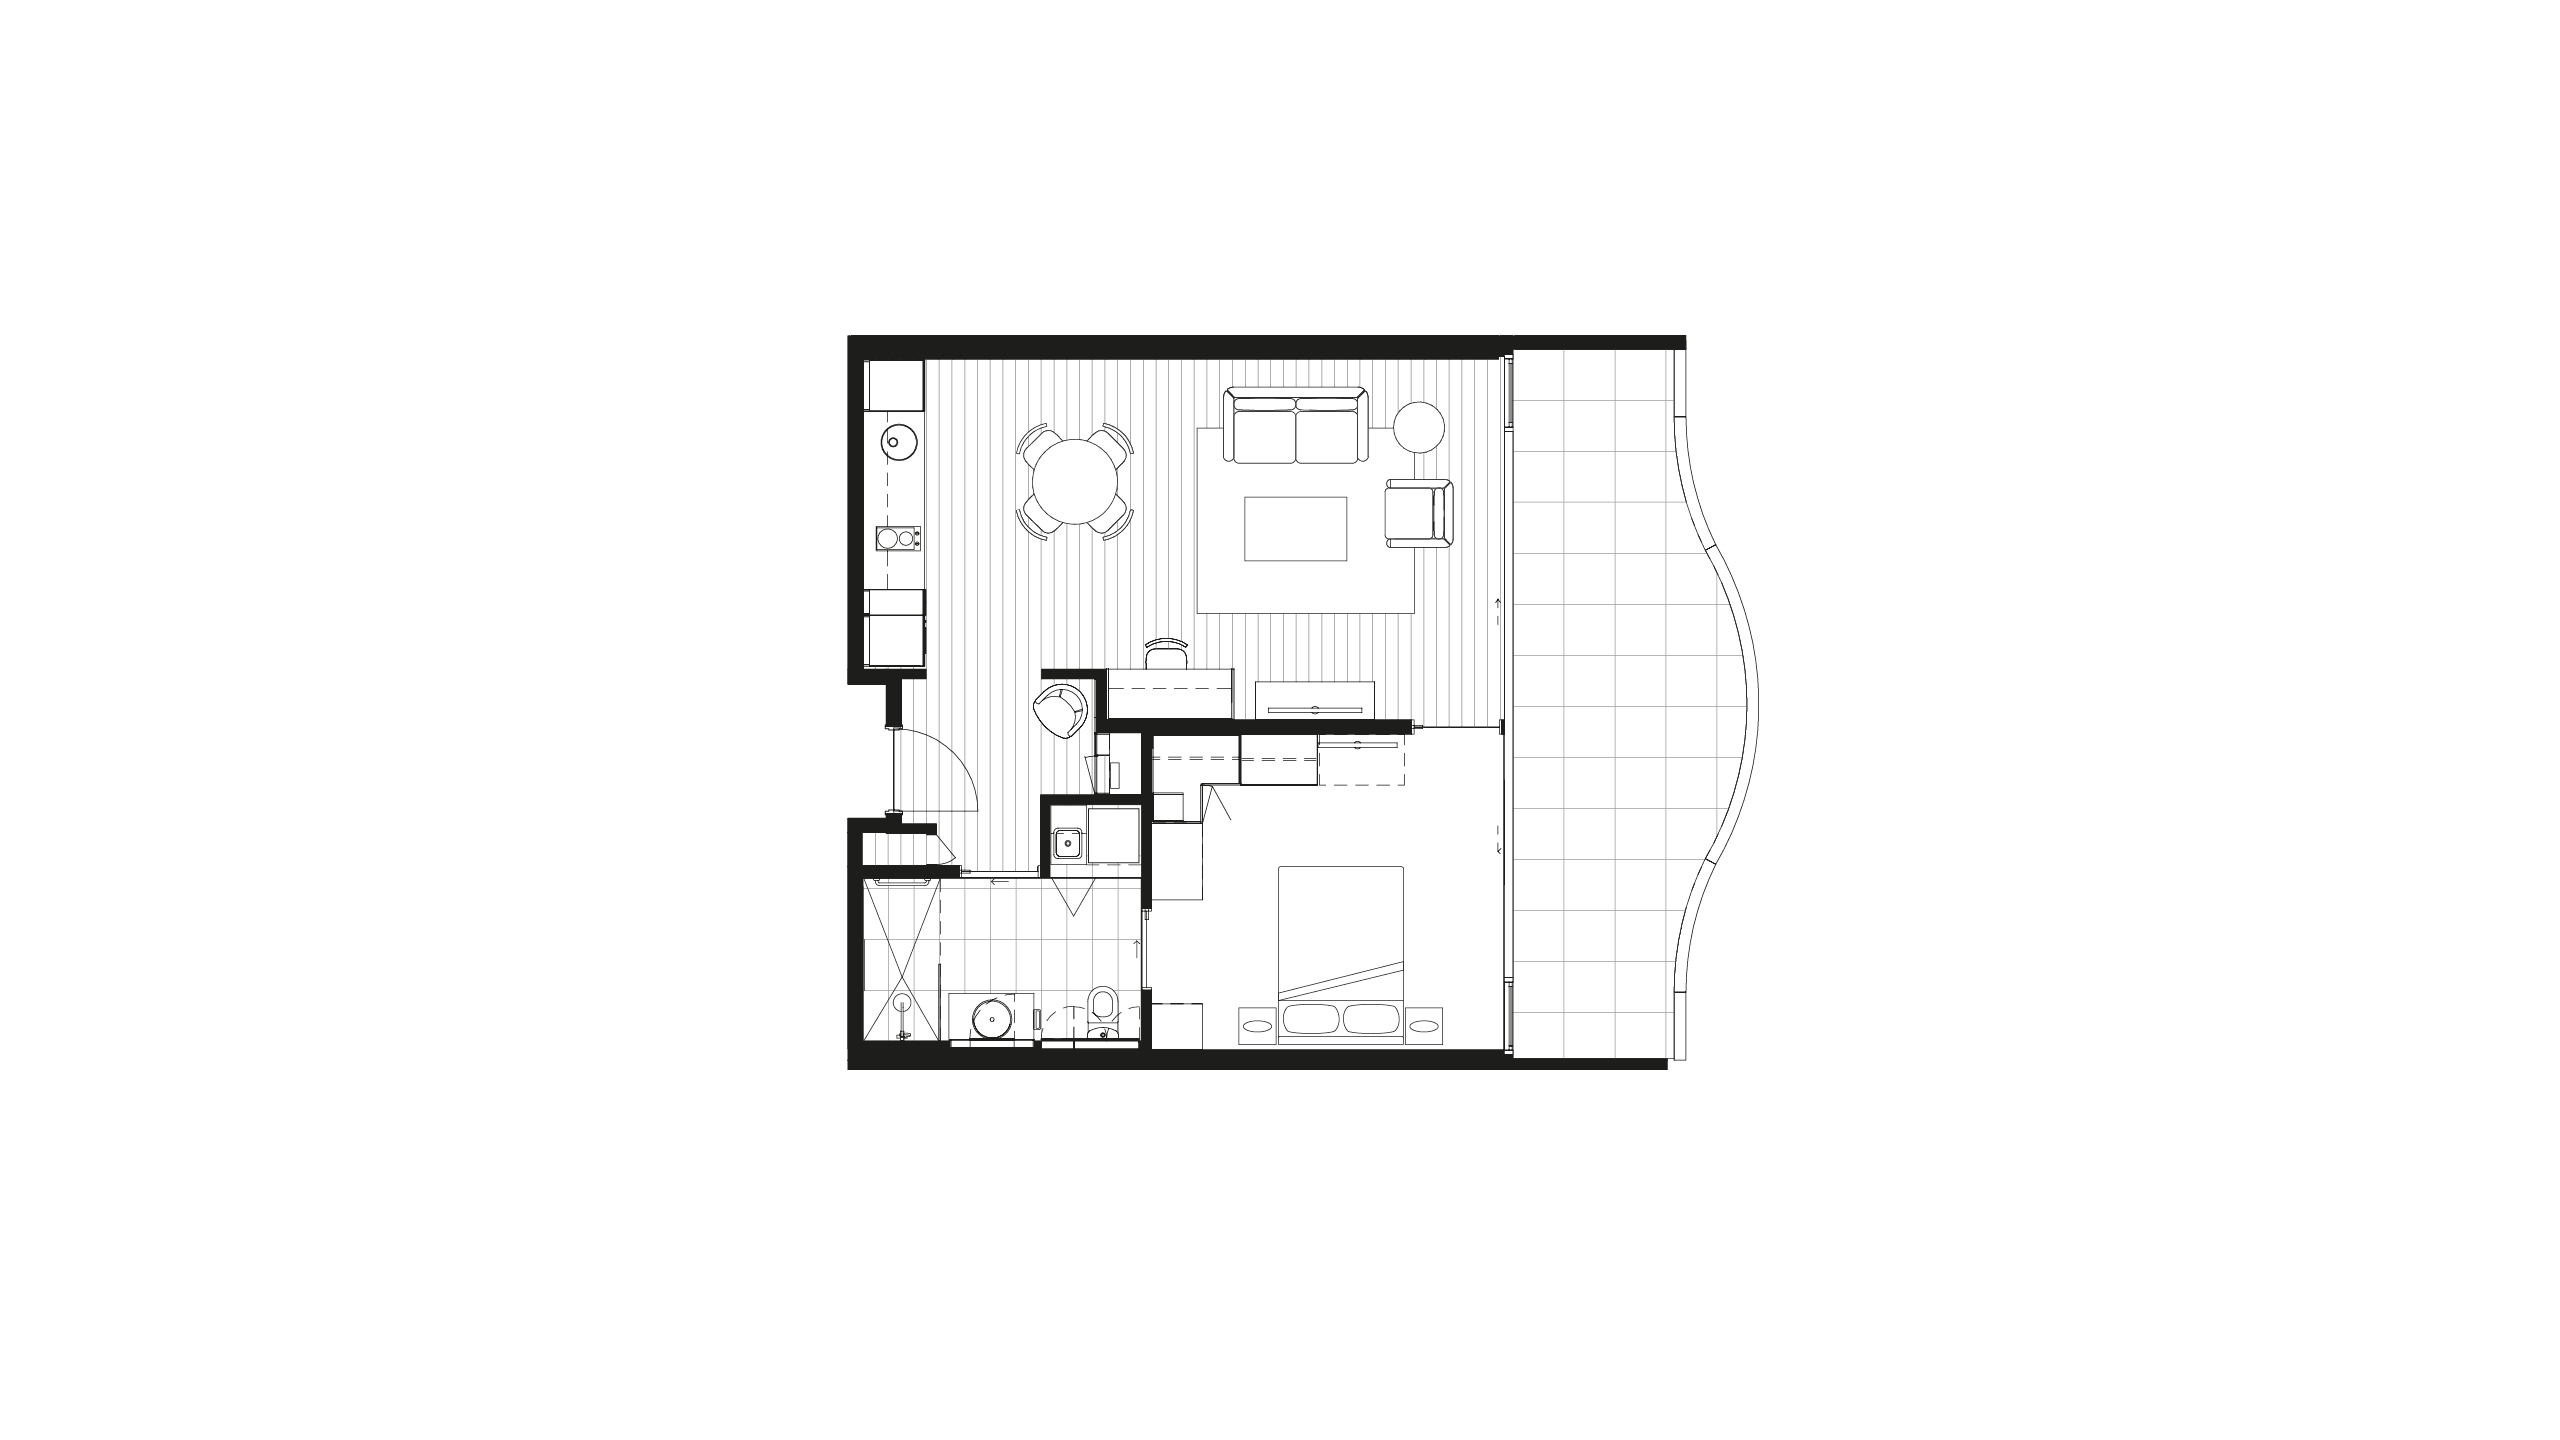 Floorplan - Apartment 101 at Morgan Glen Iris